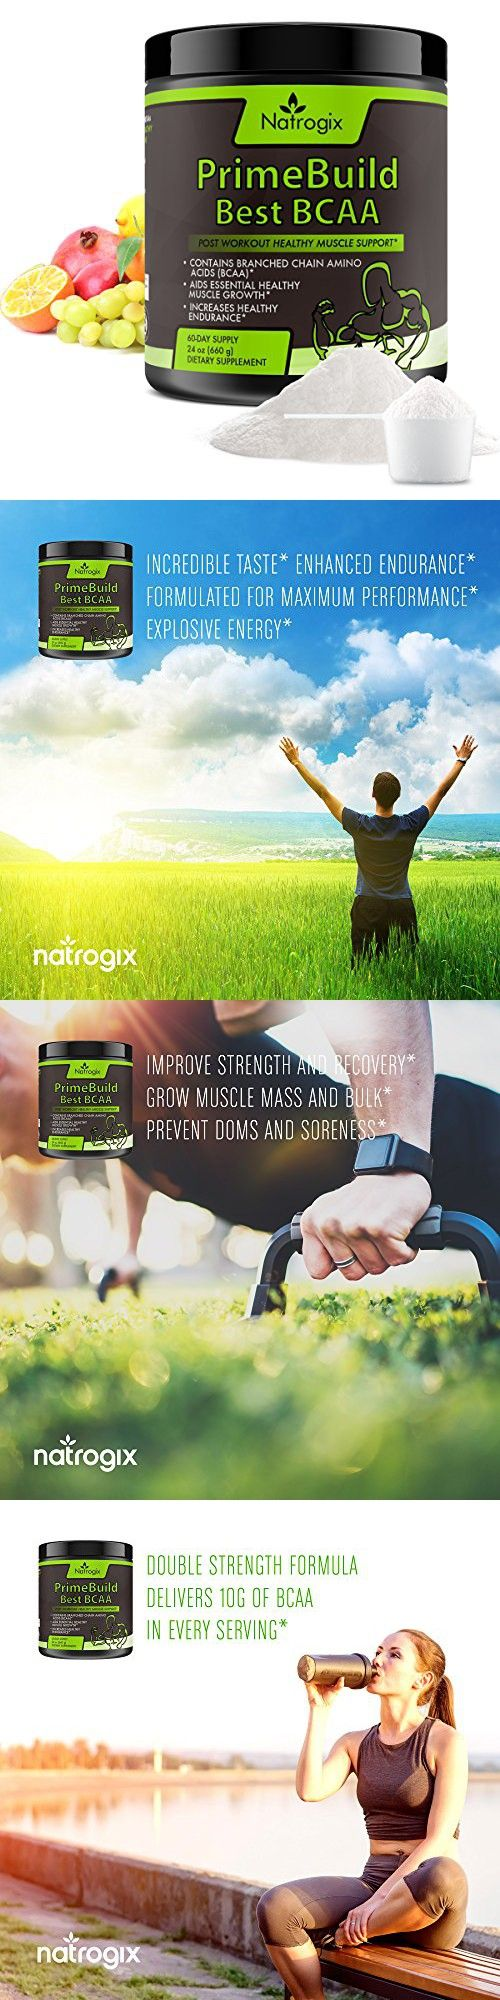 Natrogix 660g (24oz) Essential 3-in-1 Muscle Builder - Post Workout Recovery with BCAA, Creatine Monohydrate, and L-Glutamine Powder, 60 Servings